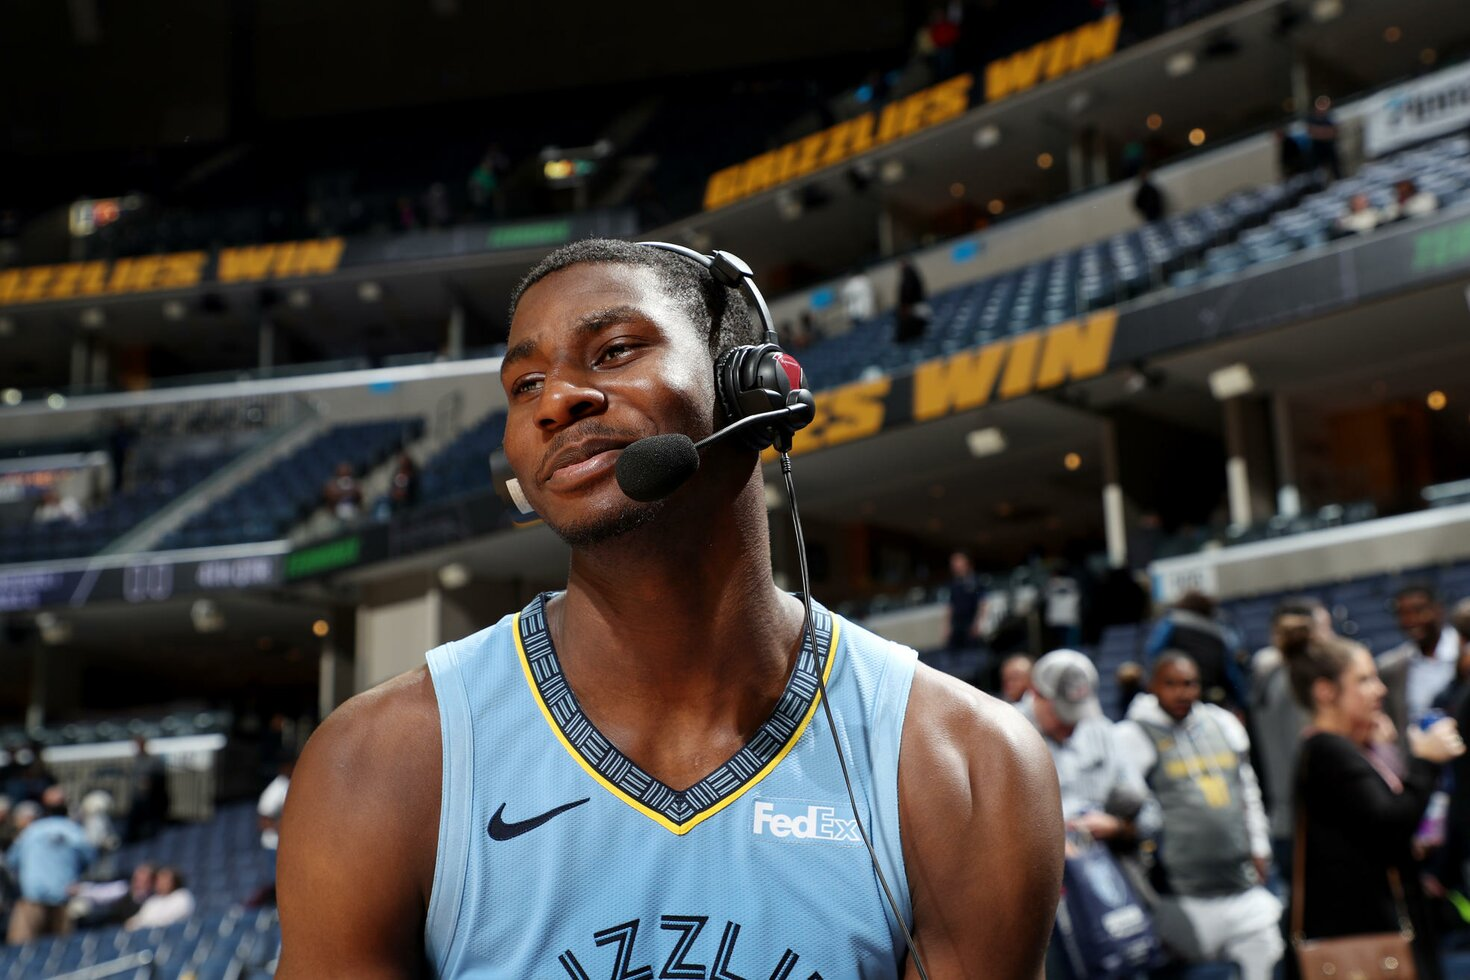 MEMPHIS, TN - JANUARY 26: Jaren Jackson Jr. #13 of the Memphis Grizzlies talks to the media after the game against the Indiana Pacers January 26, 2019 at FedExForum in Memphis, Tennessee.